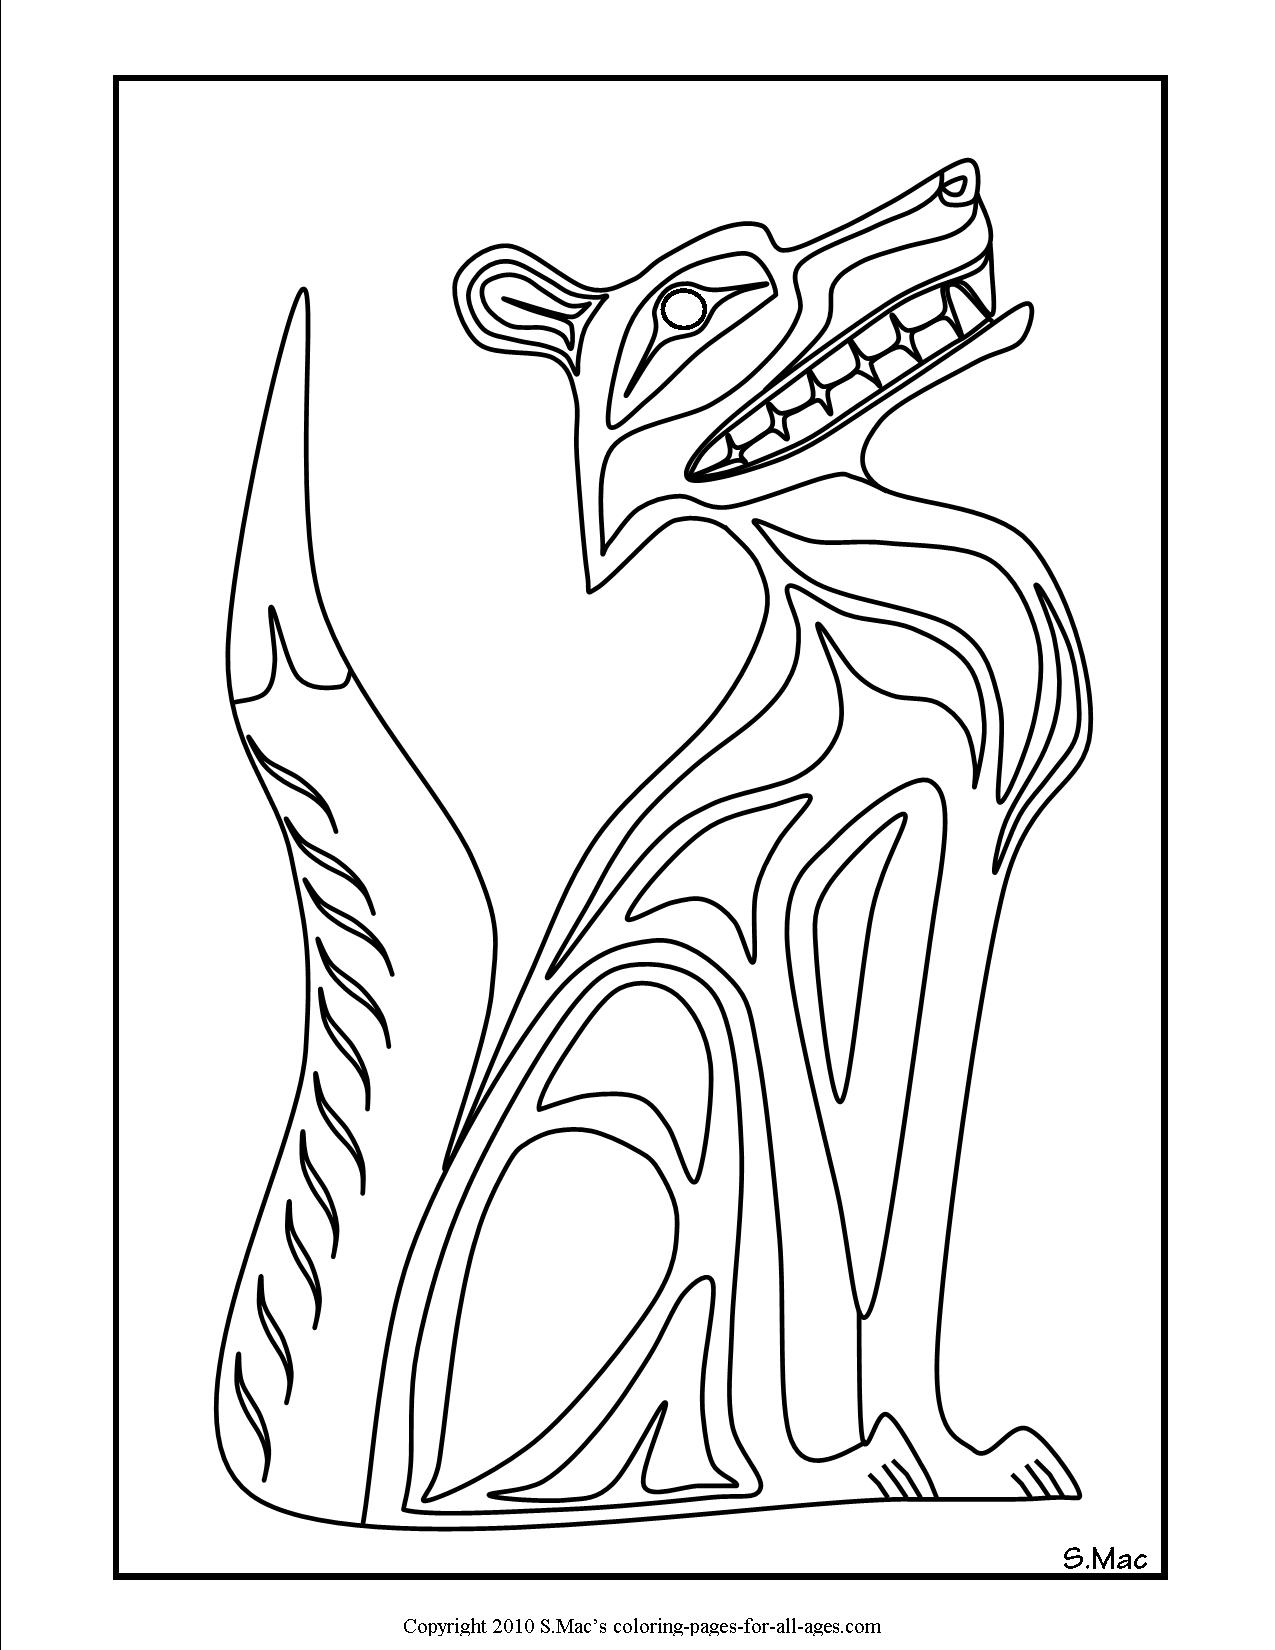 native american colouring sheets native american coloring pages for adults at getcolorings native sheets american colouring